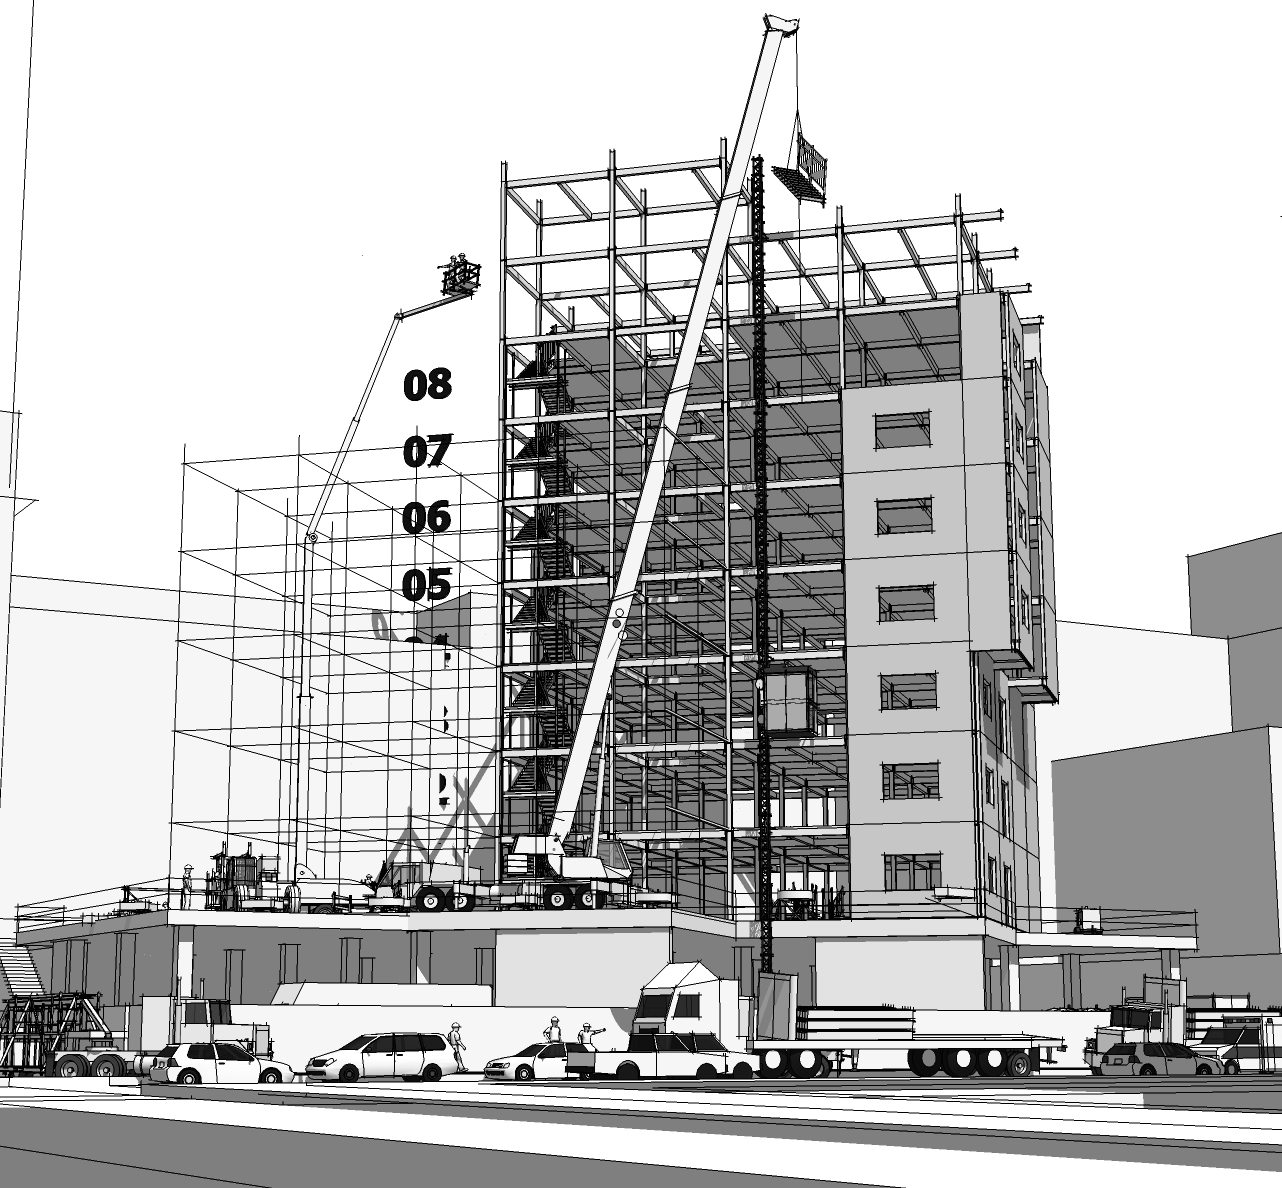 3d construction modeling rethinking 3d as a process document 3d model sites